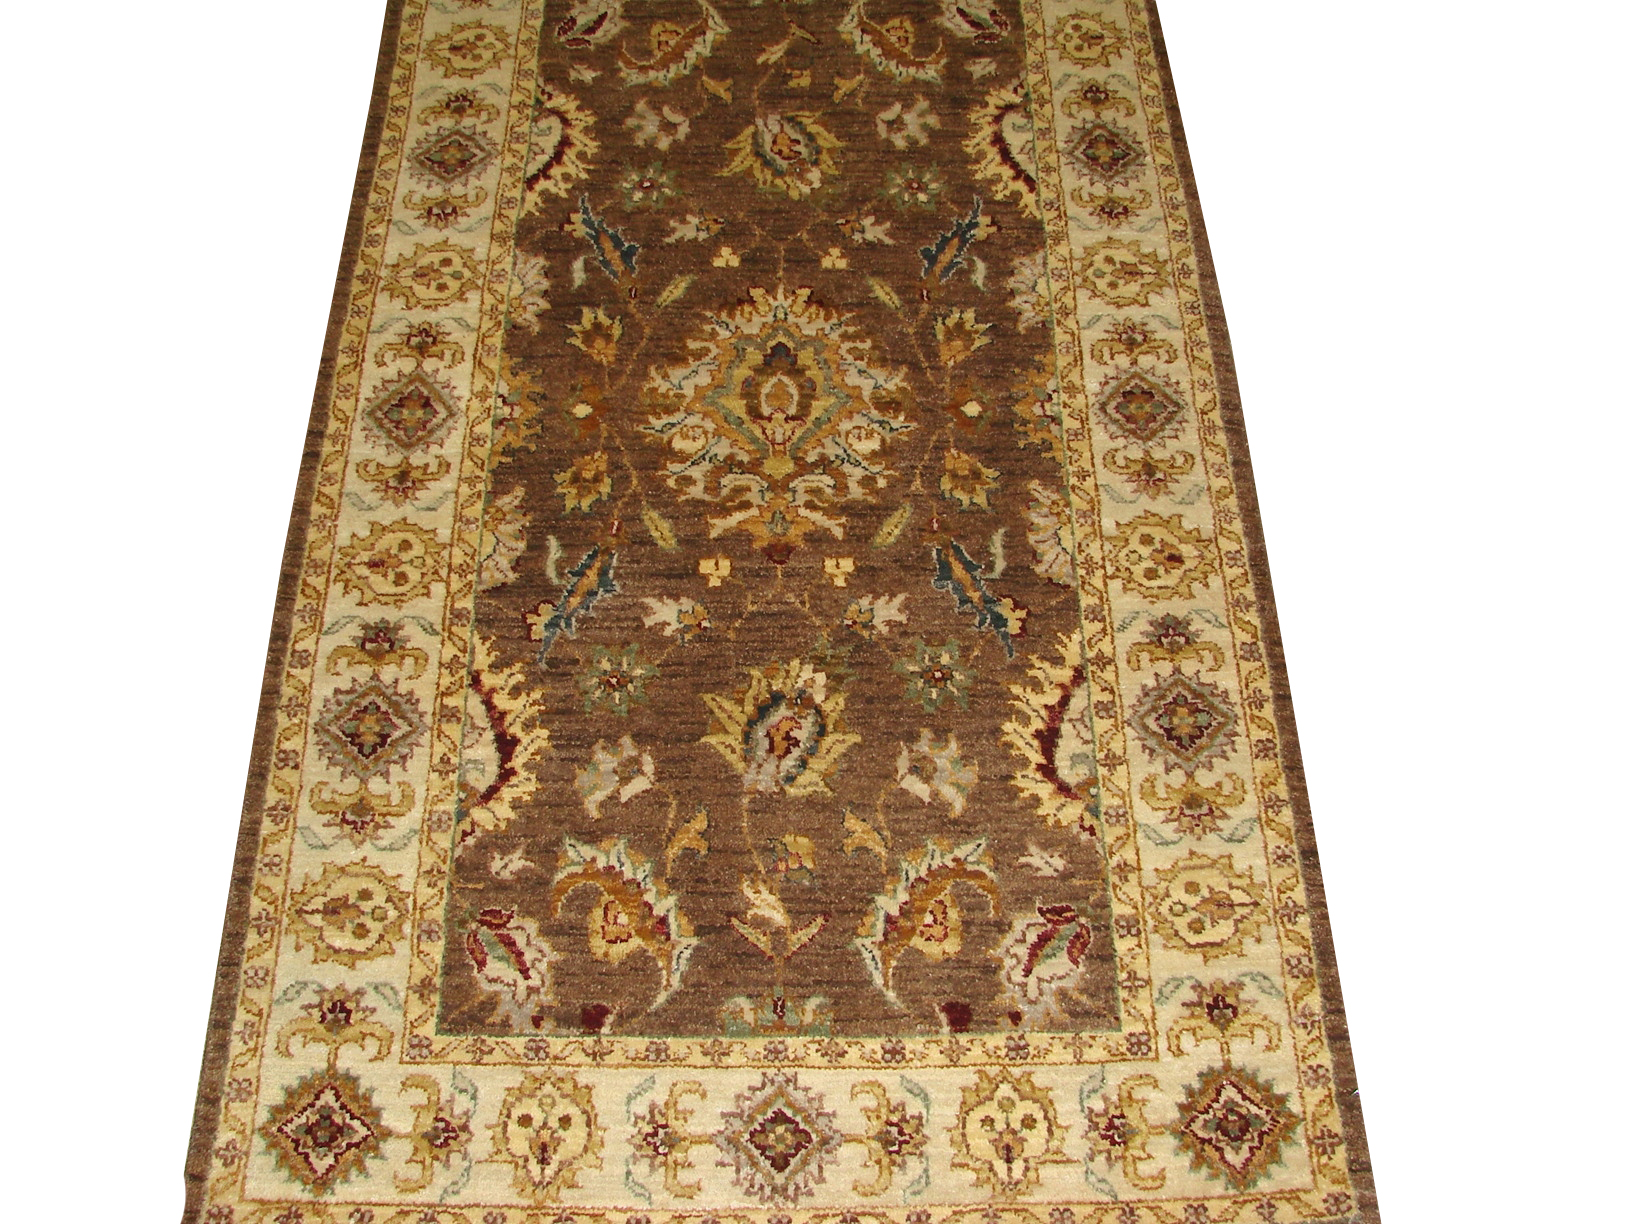 3x5 Traditional Hand Knotted Wool Area Rug - MR14662